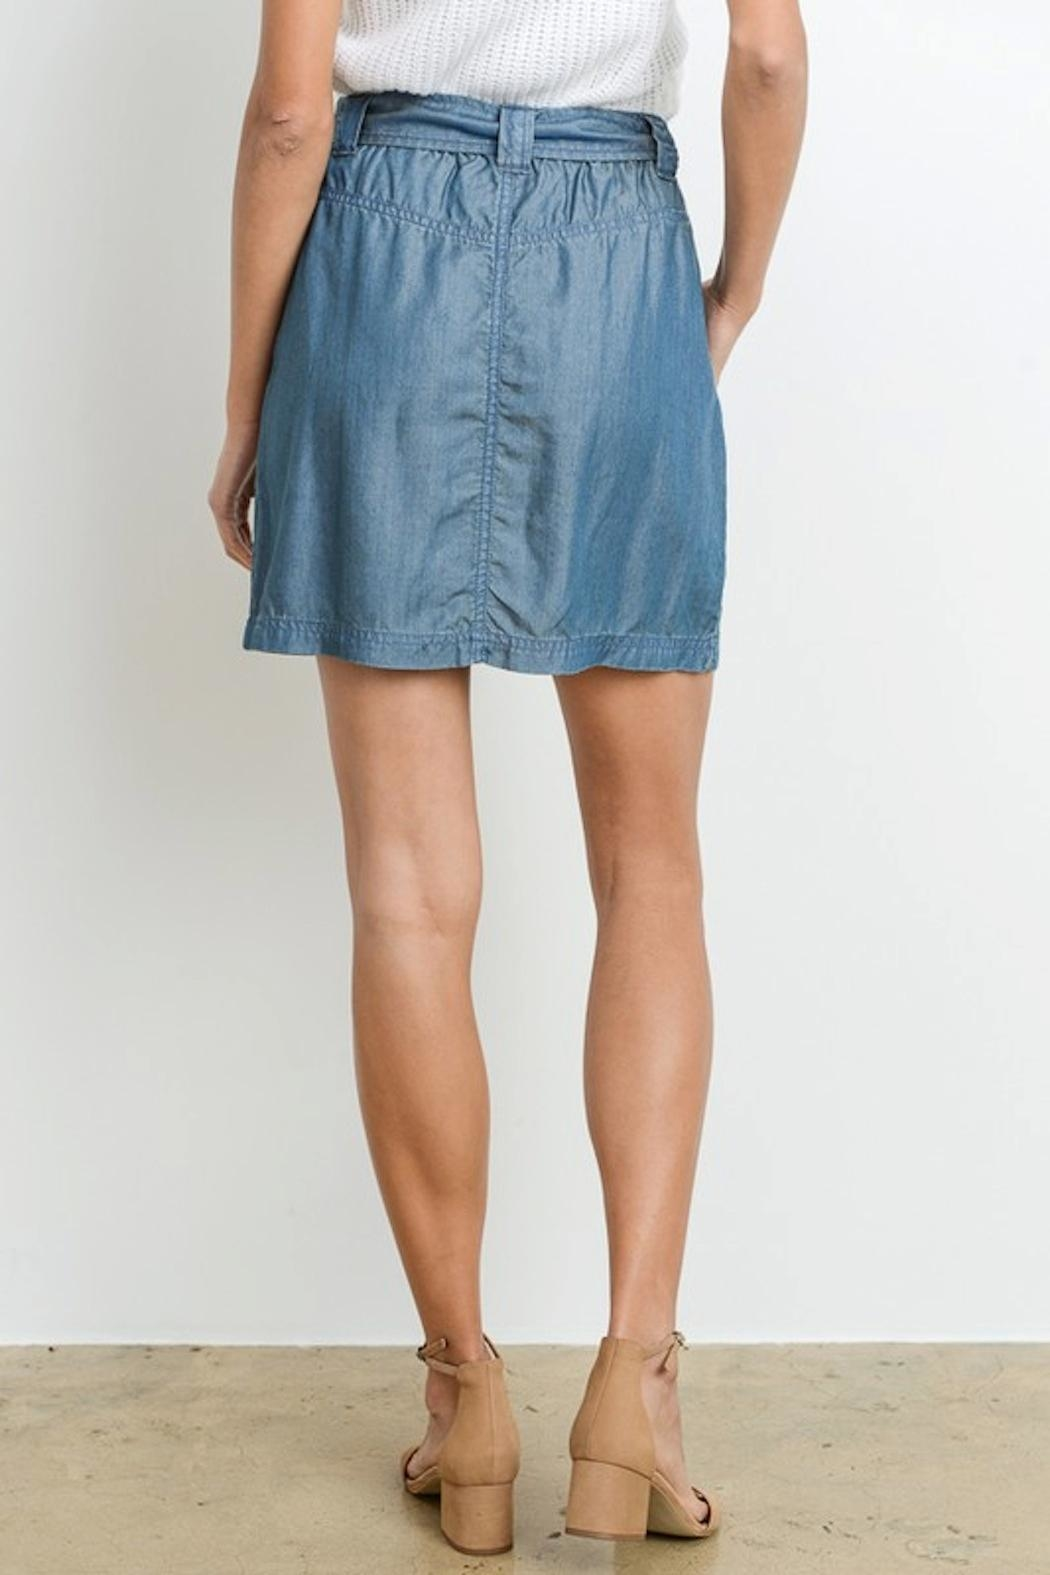 Apricot Lane St. Cloud Summer Vacay Skirt - Side Cropped Image